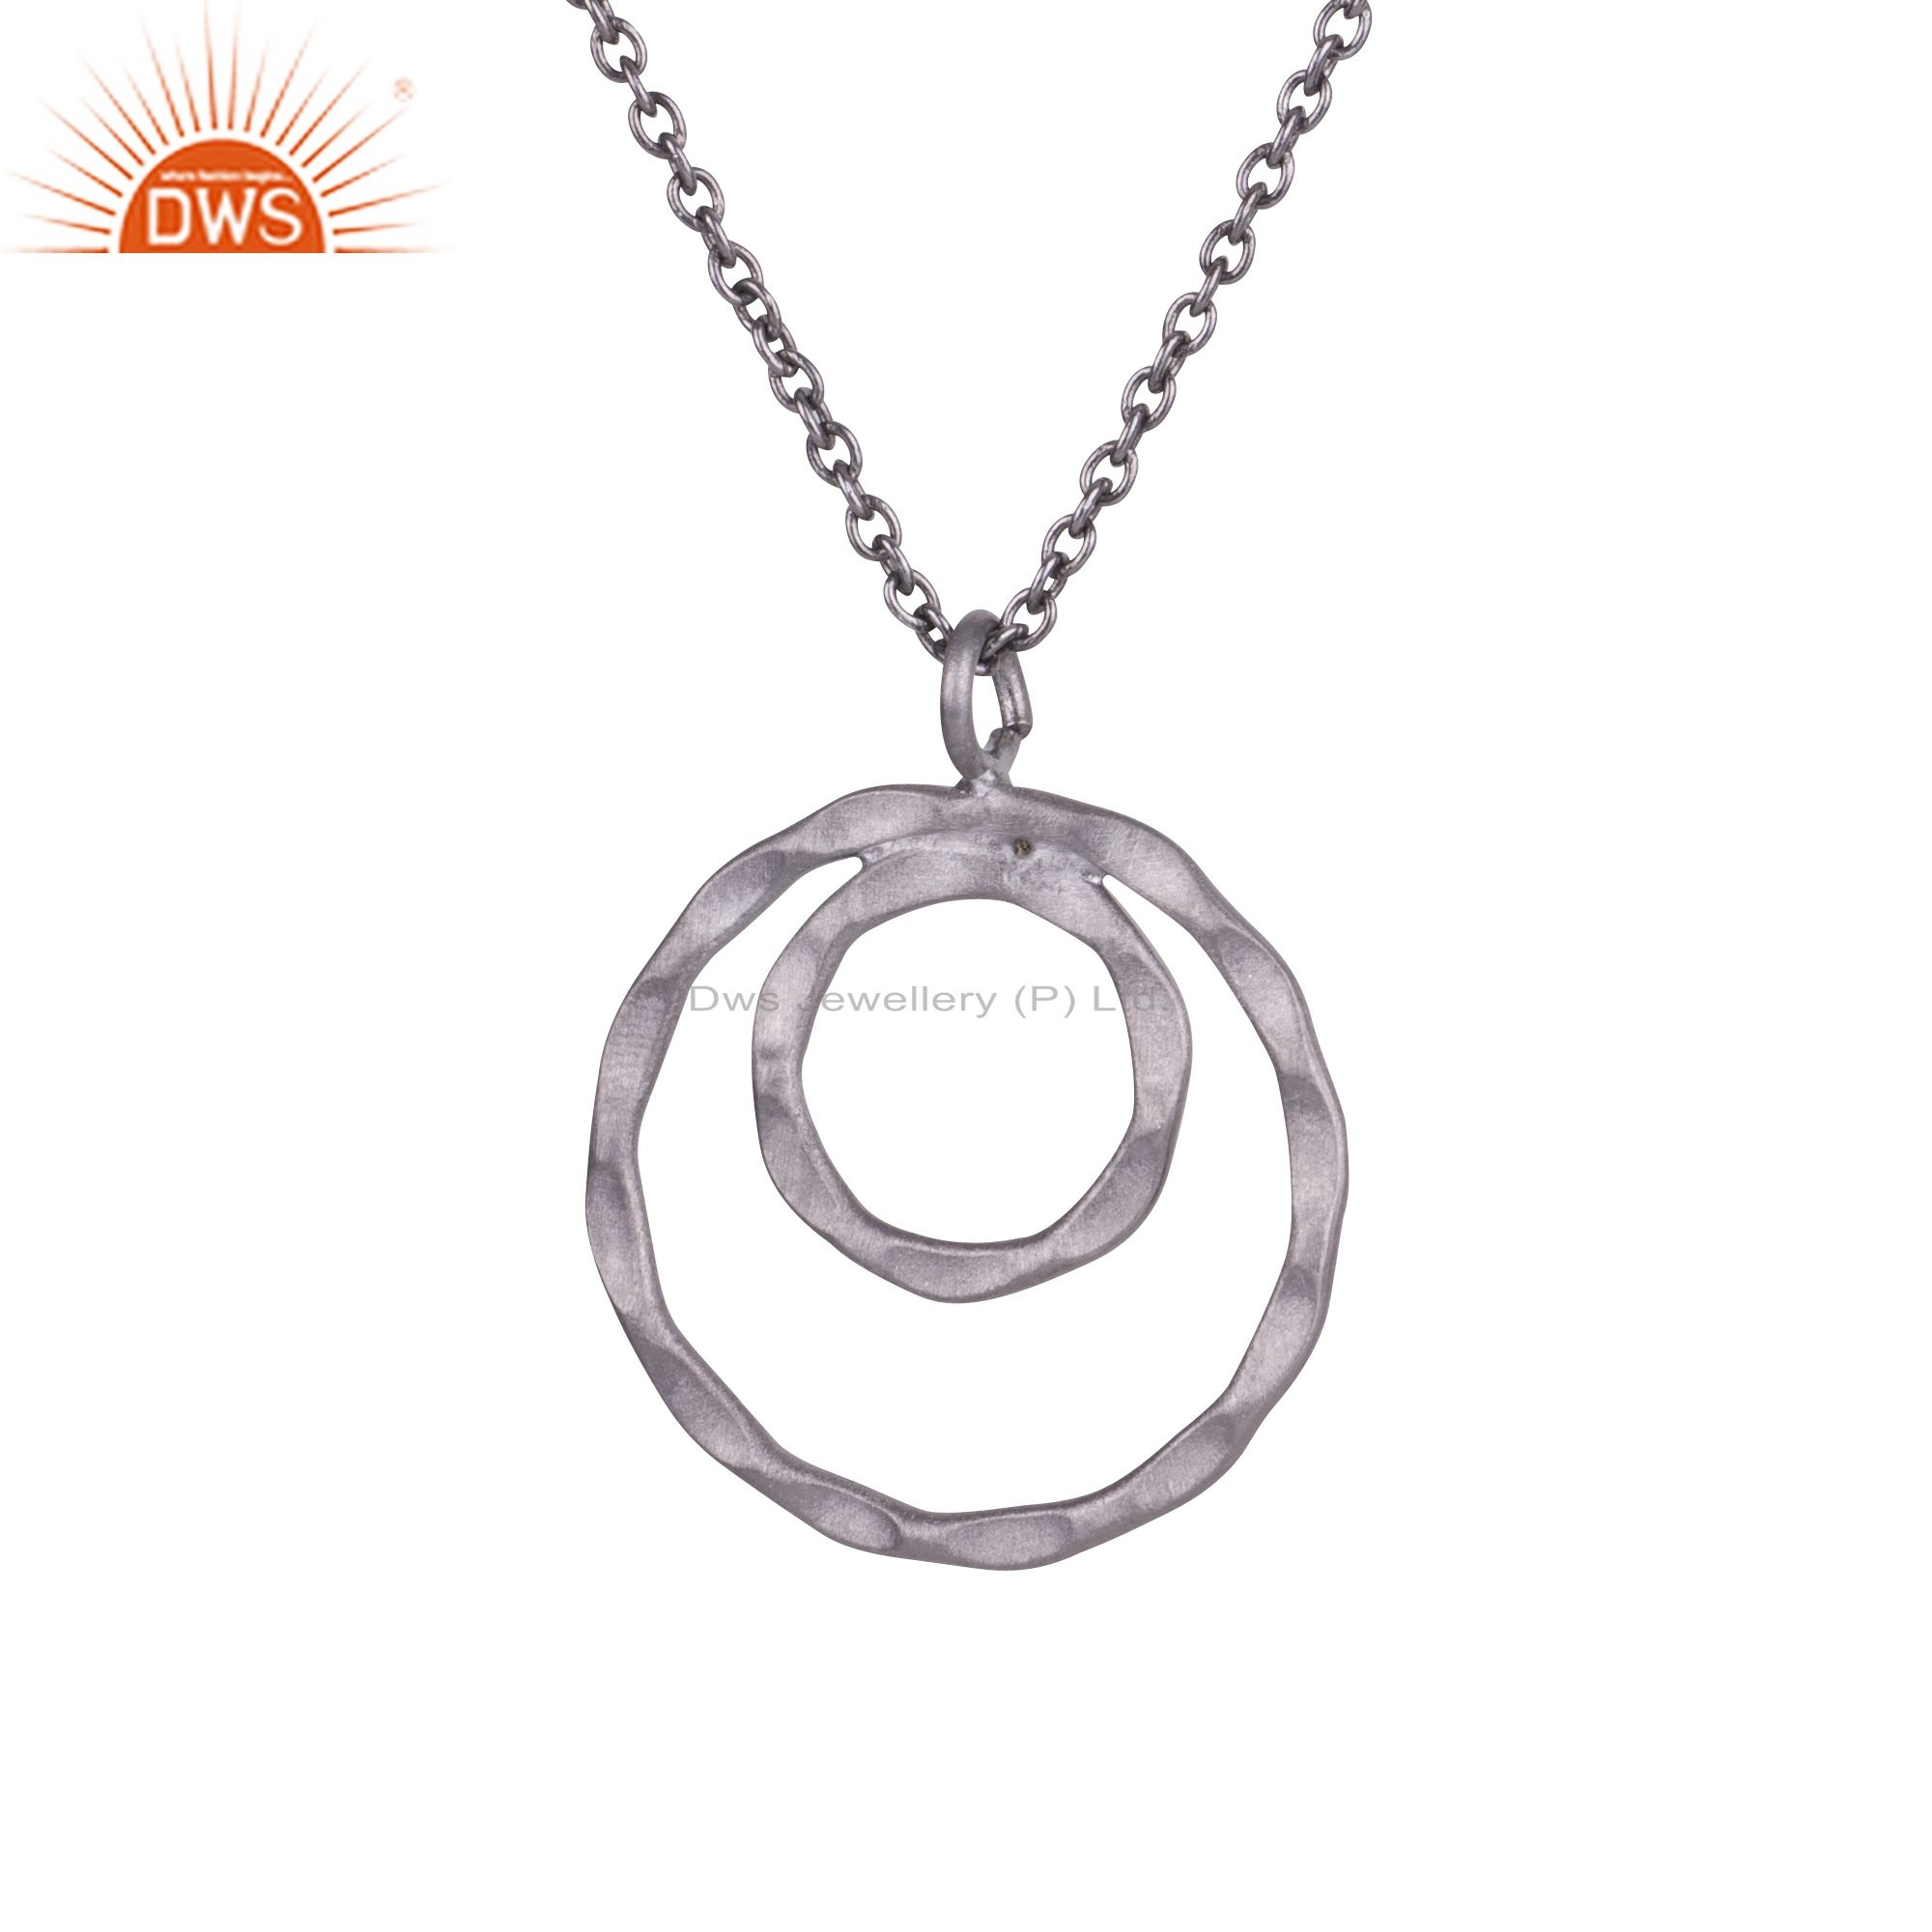 925 Sterling Silver Oxidized Hammered Two Circle Pendant With Chain Necklace